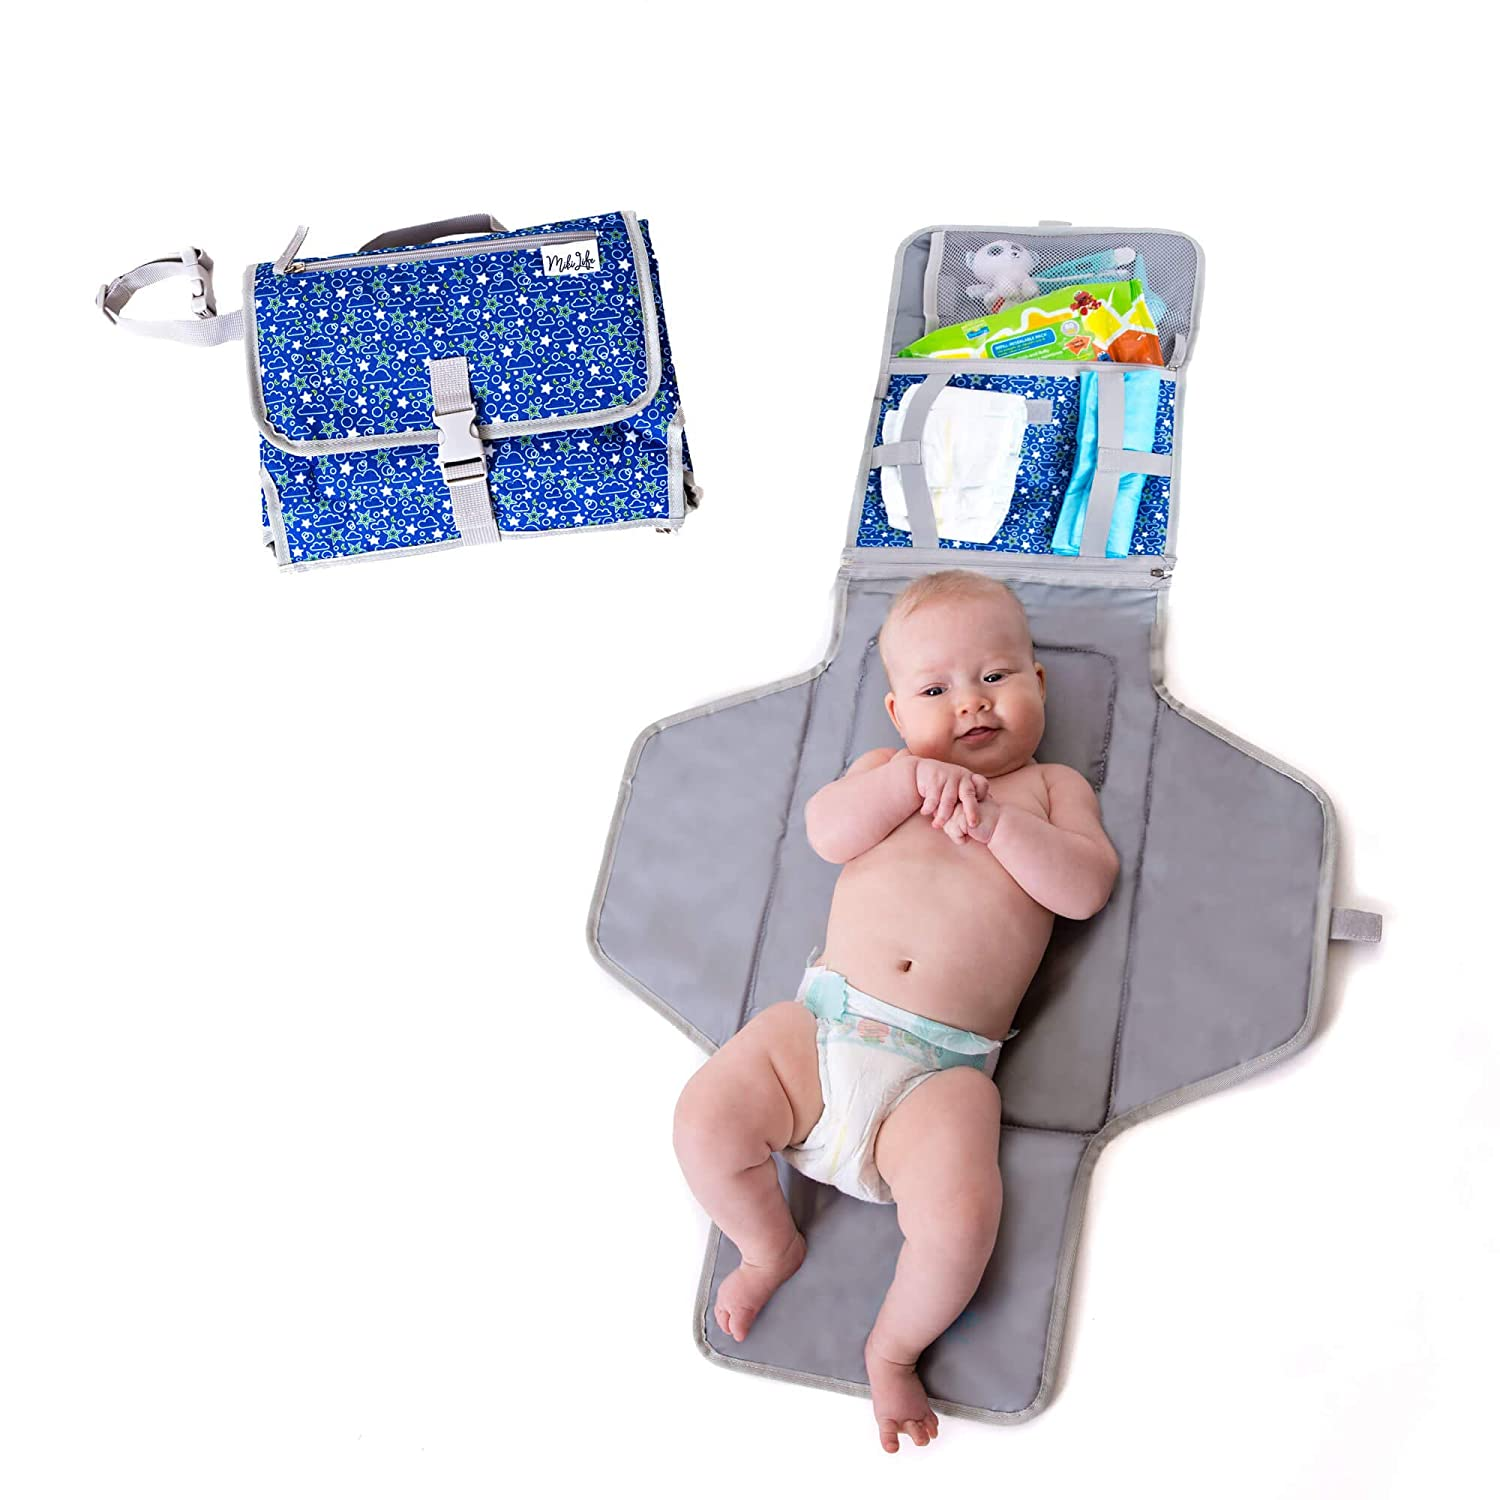 Baby Portable Changing Mat   Lightweight Travel Diaper Station Kit with Waterproof and Cushioned Pad   Foldable Pad with Pockets   Changing Organizer Bag for Toddlers Infants & Newborns   Blue